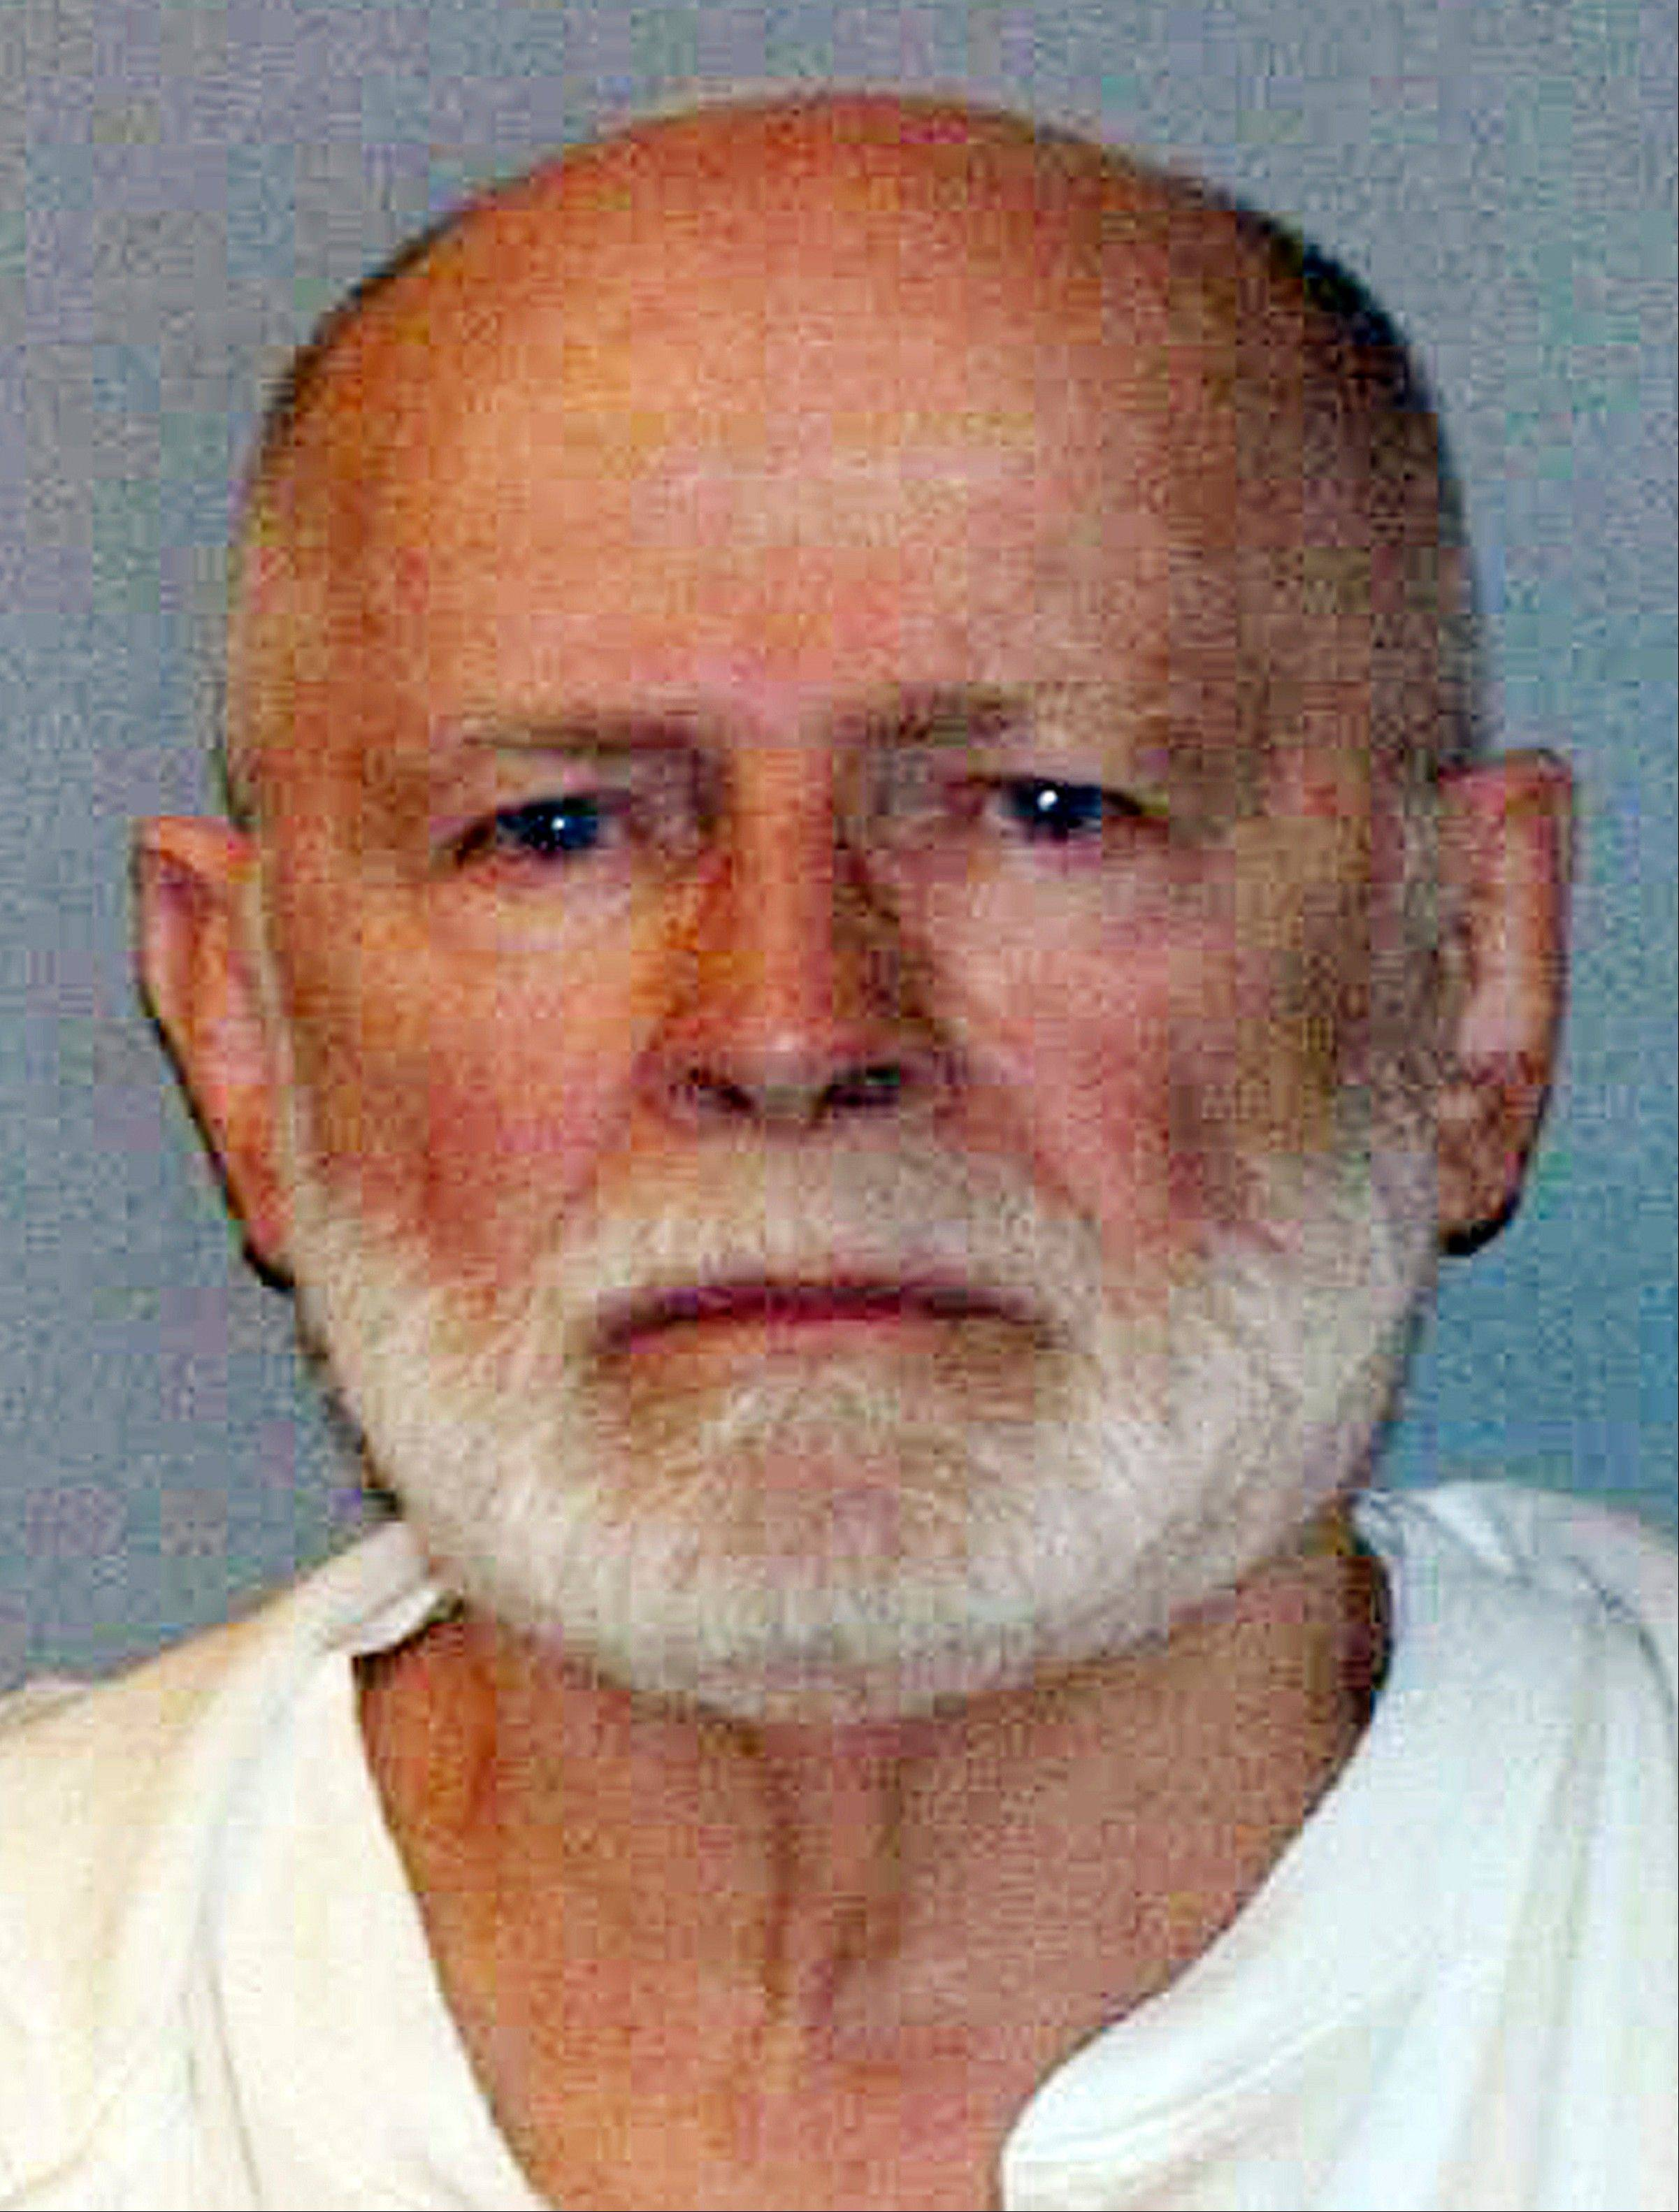 James �Whitey� Bulger, one of the FBI�s Ten Most Wanted fugitives, was captured in Santa Monica, Calif., after 16 years on the run. Opening arguments in Bulger�s trial begin Wednesday, June 12, 2013 in federal court in Boston.